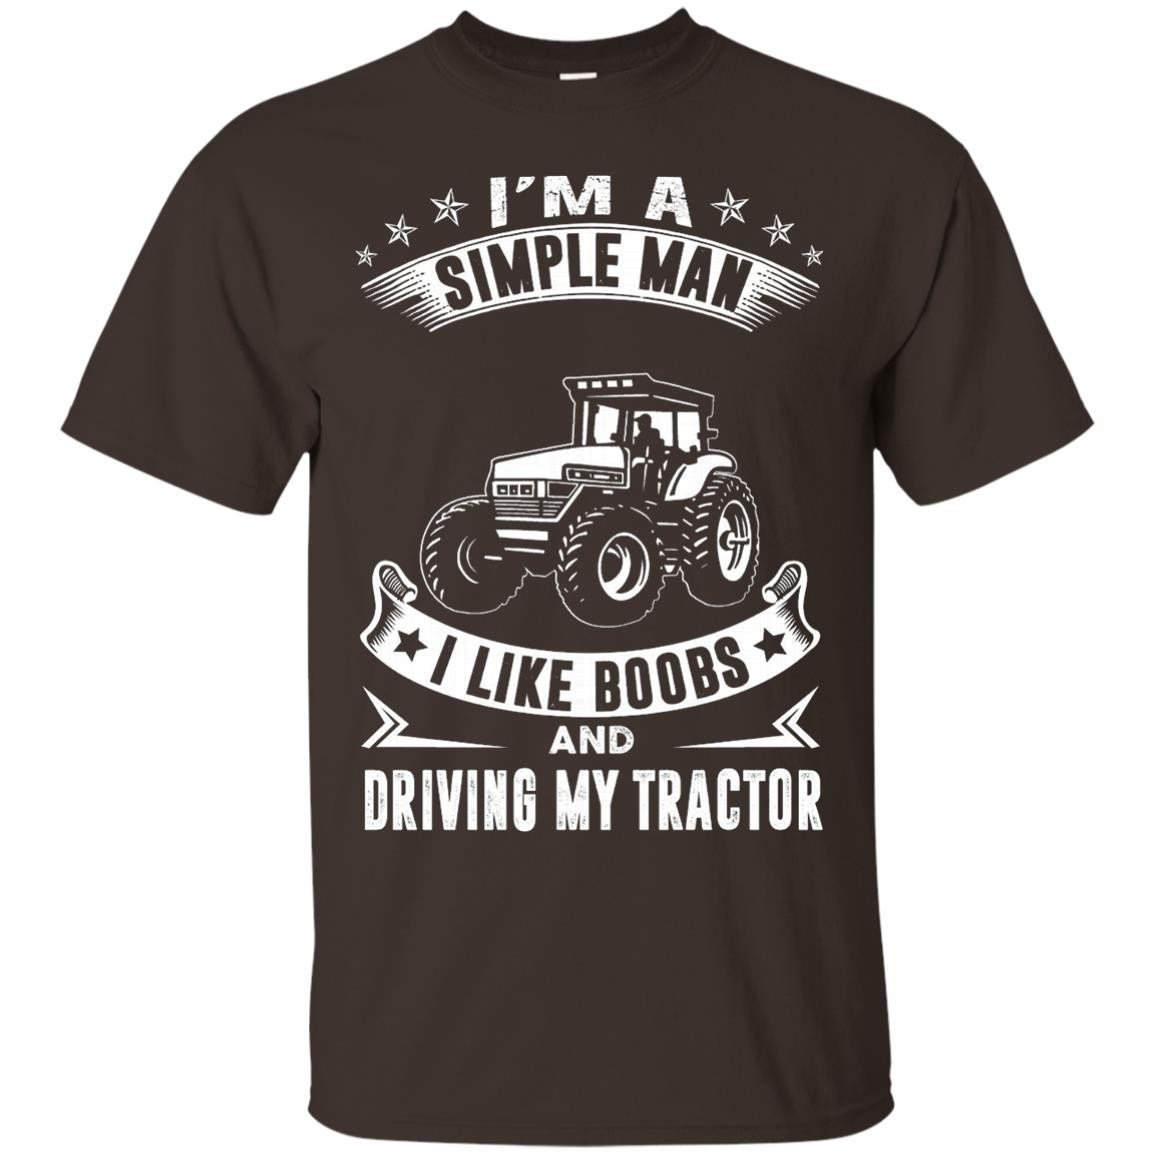 I'm A Simple Man I Like Boobs And Driving My Tractor - T-Shirt